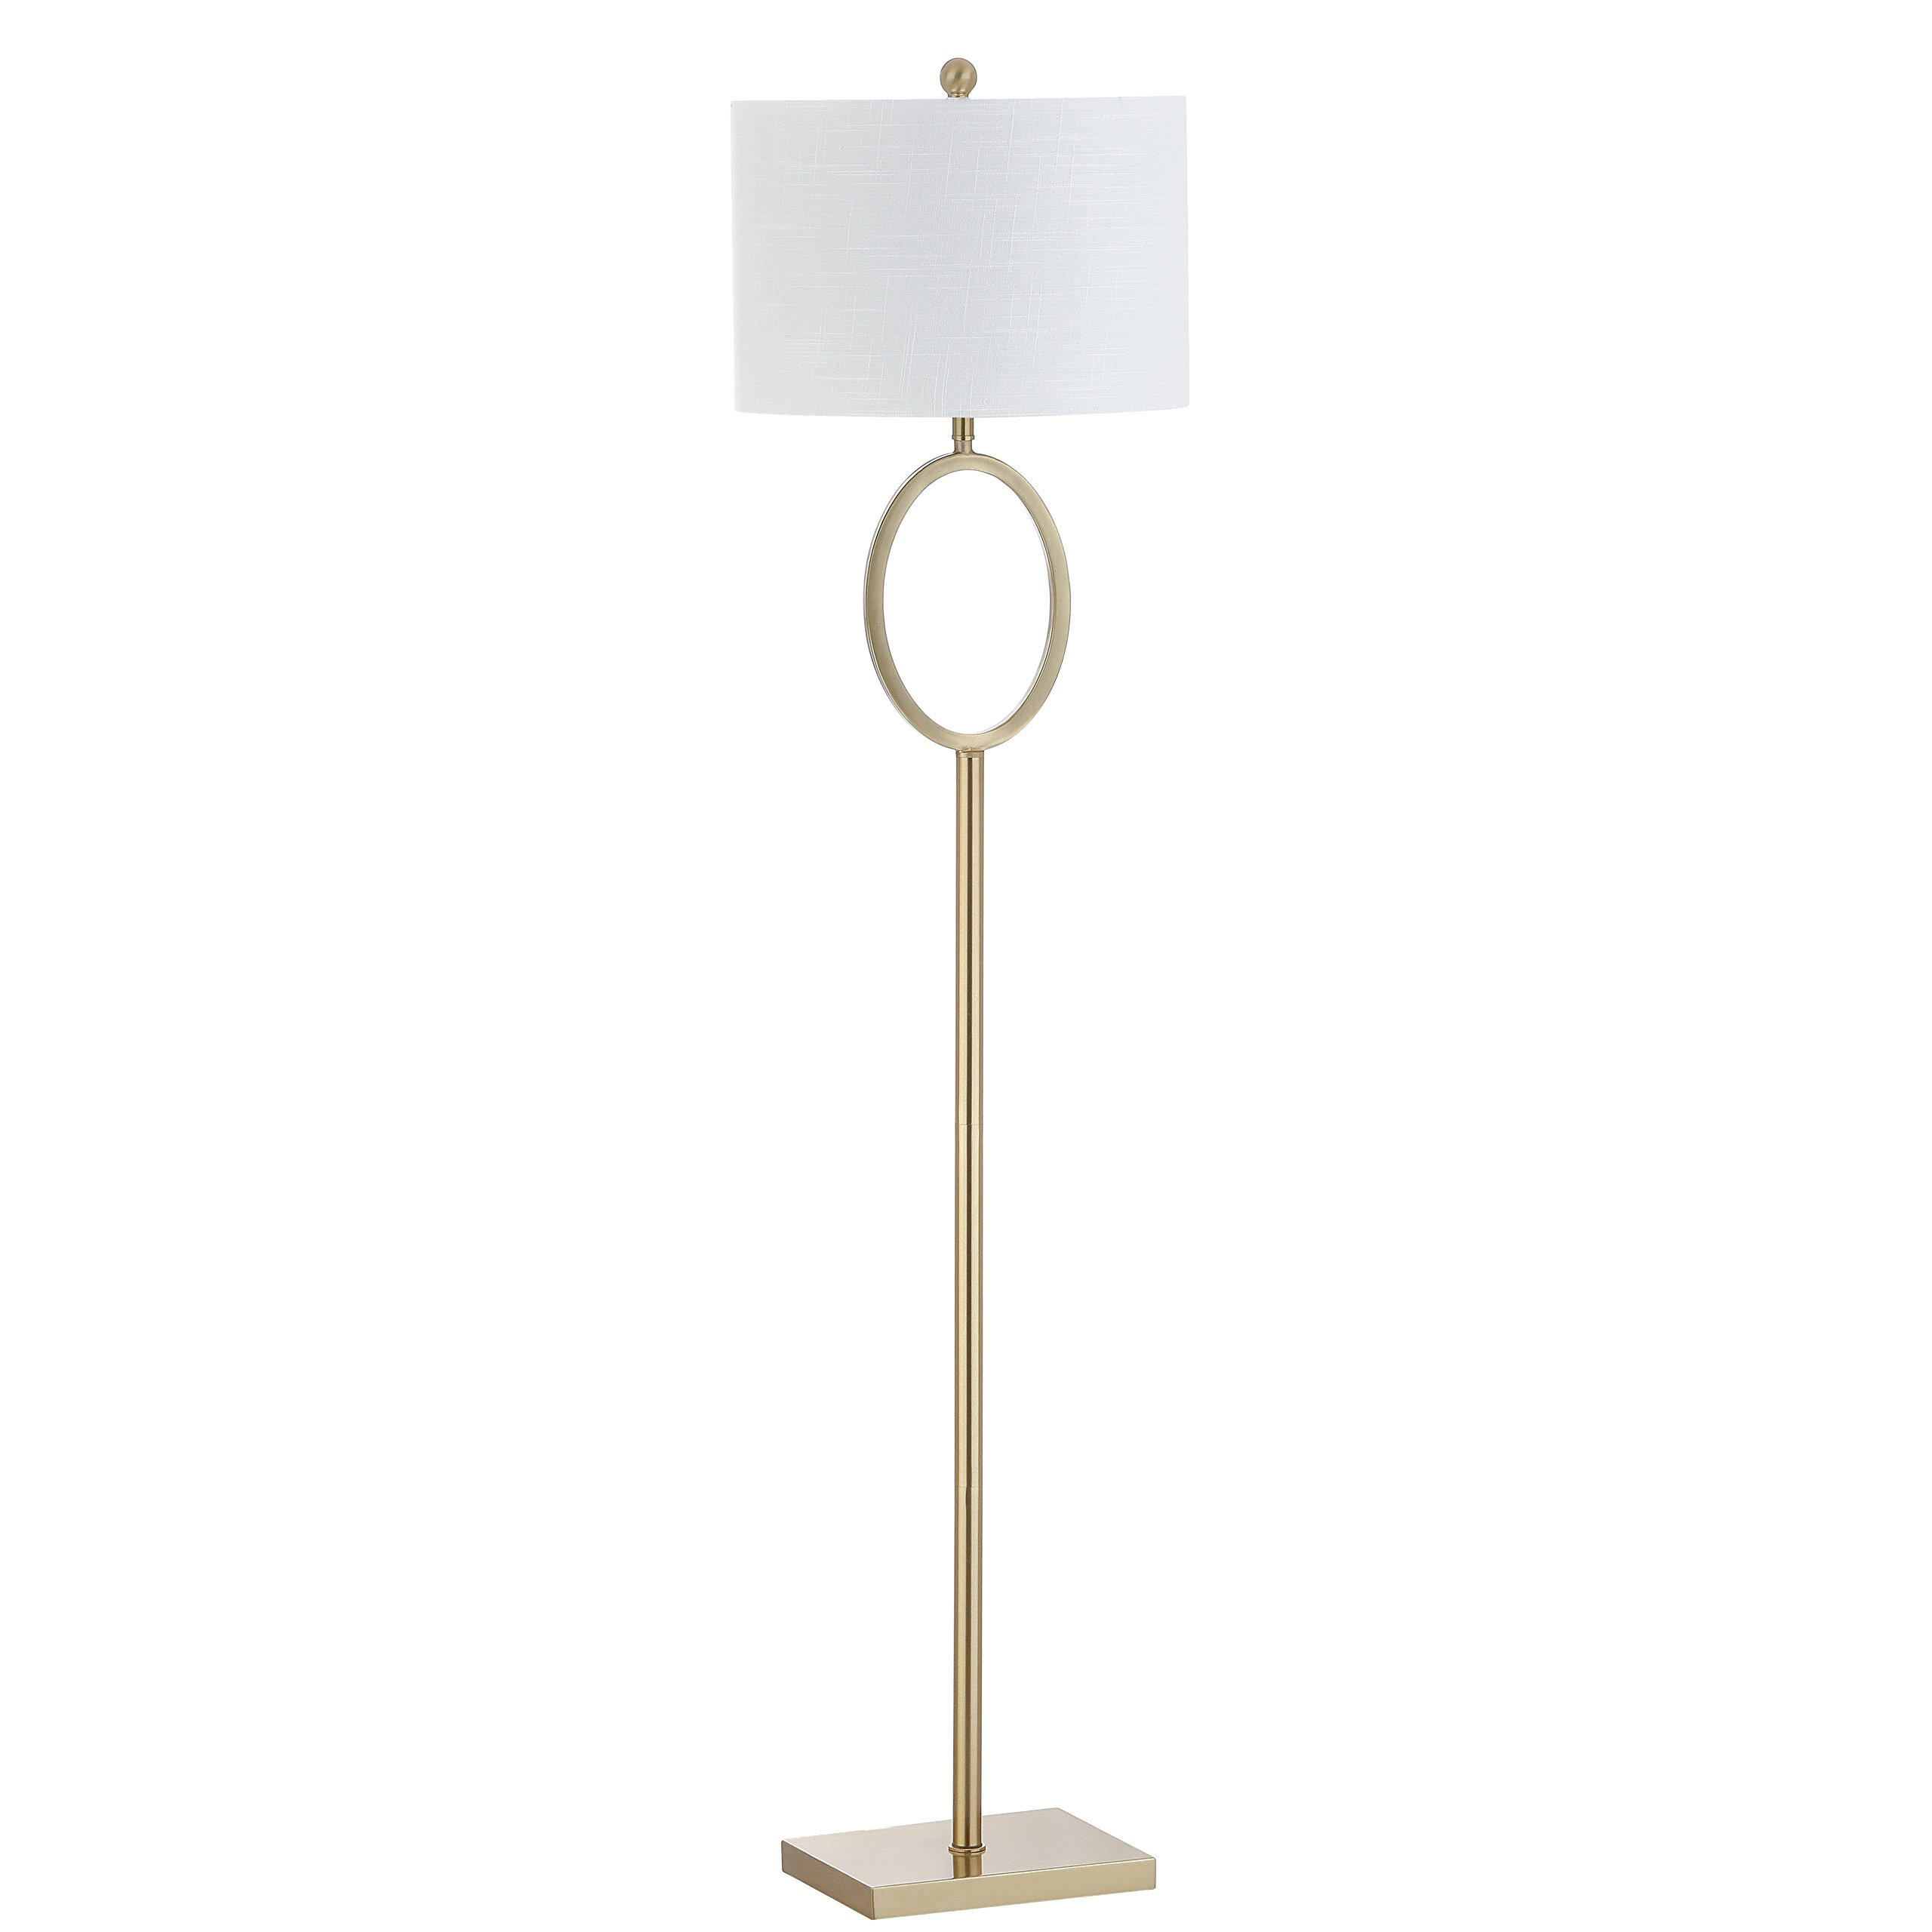 Jonathan Y JYL1089A Floor Lamp, 15'' x 61'' x 15'', Brass Gold with White Shade